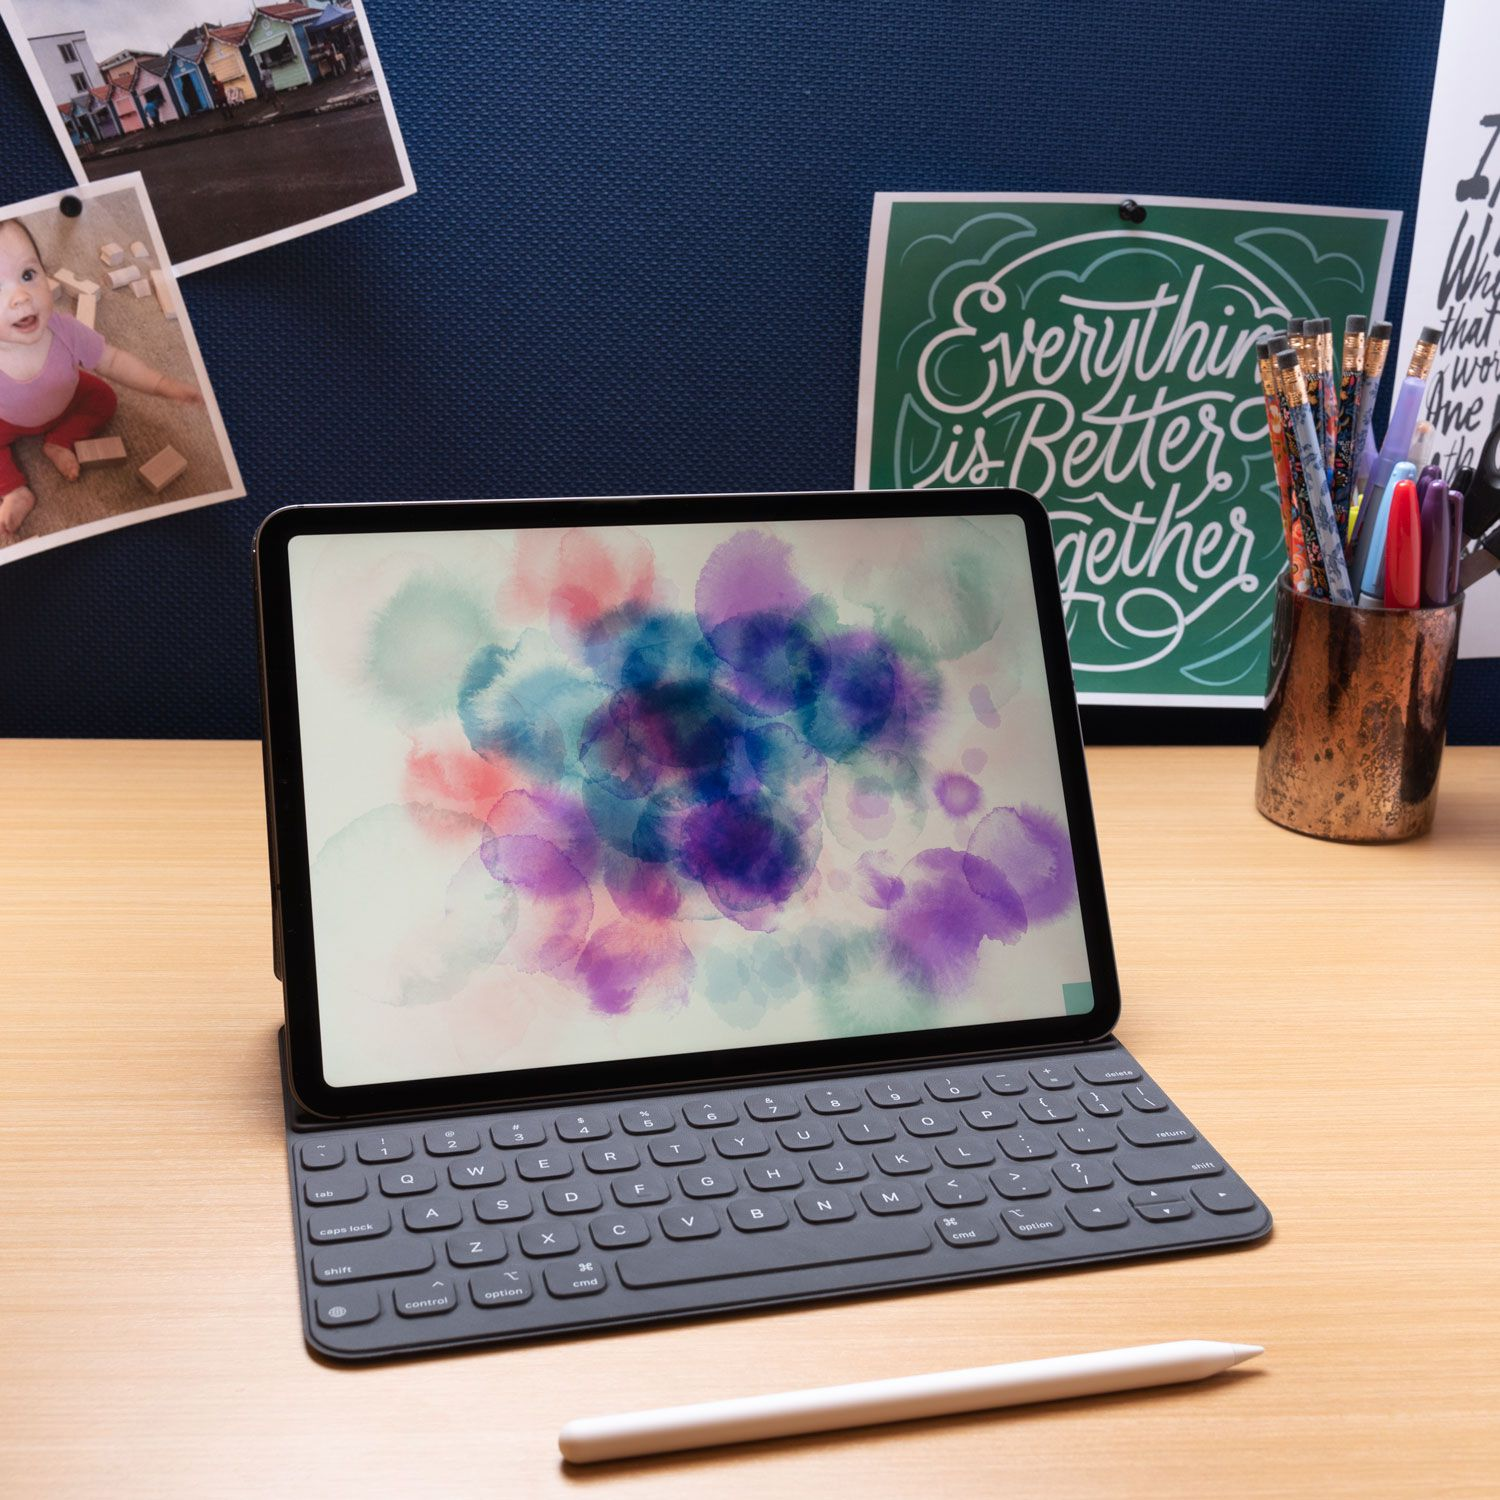 Apple Ipad Pro 2018 11 Inch Review The Best On The Market